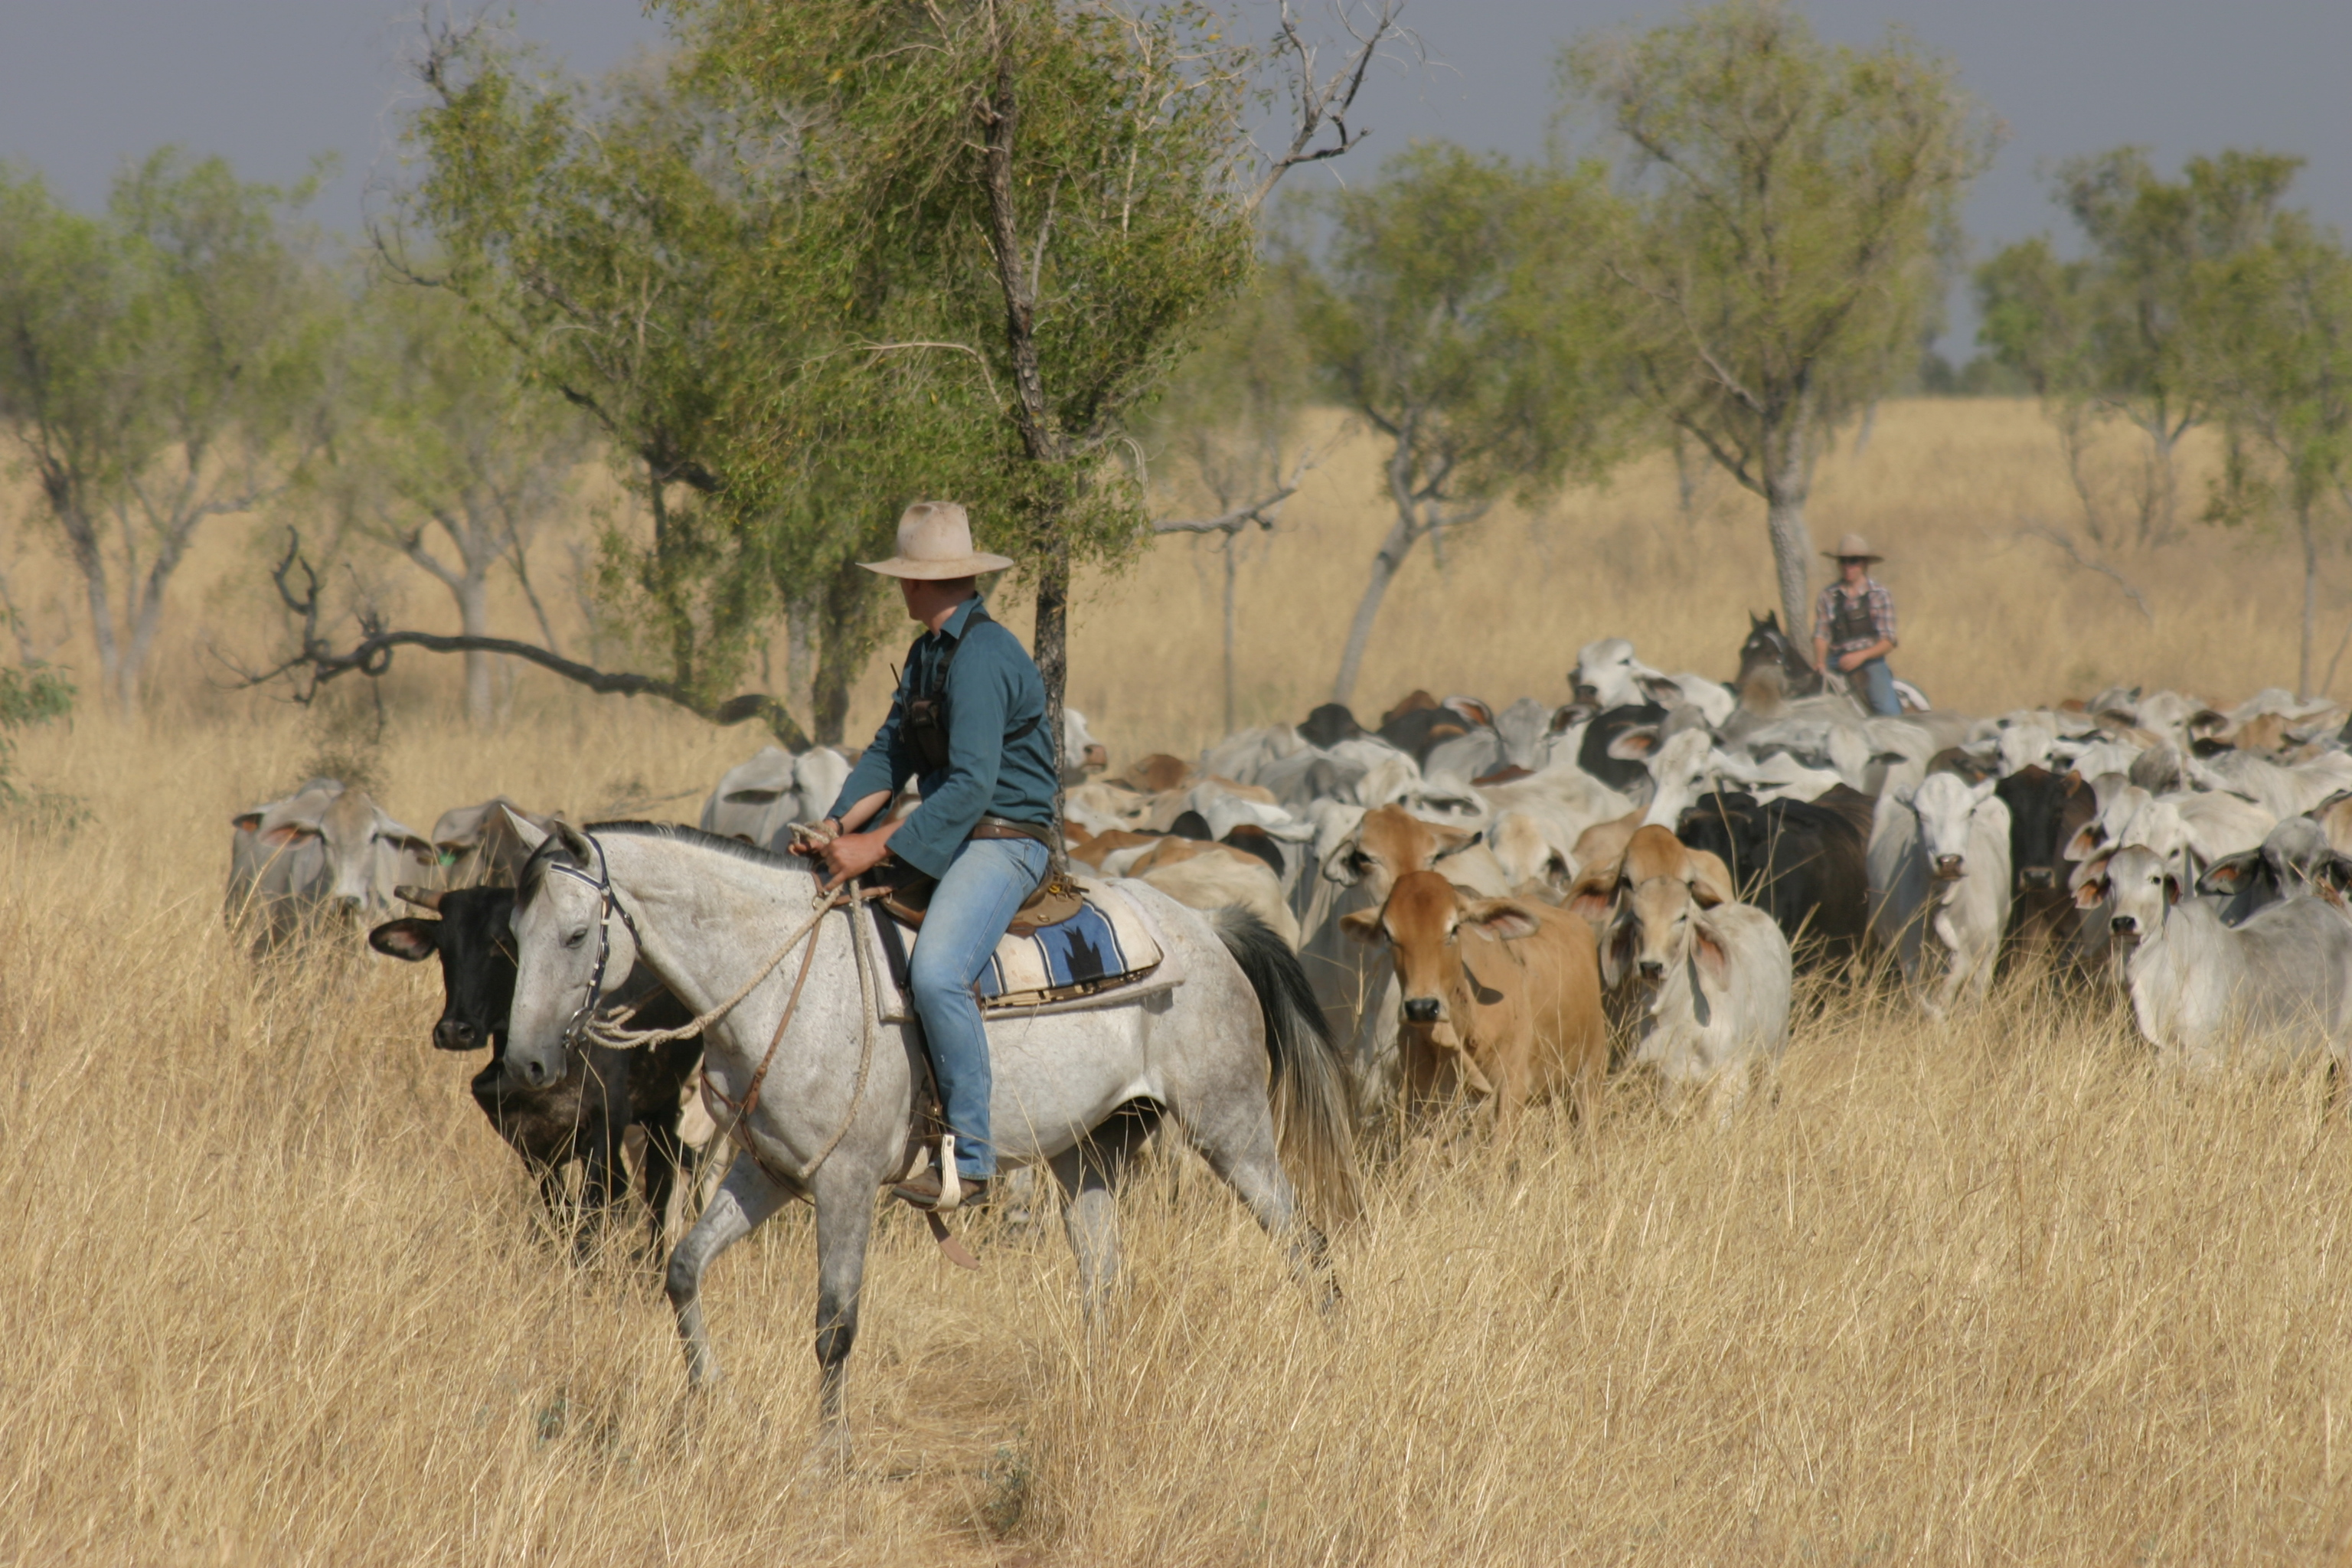 Man on horseback leading mob of cattle through the bush.